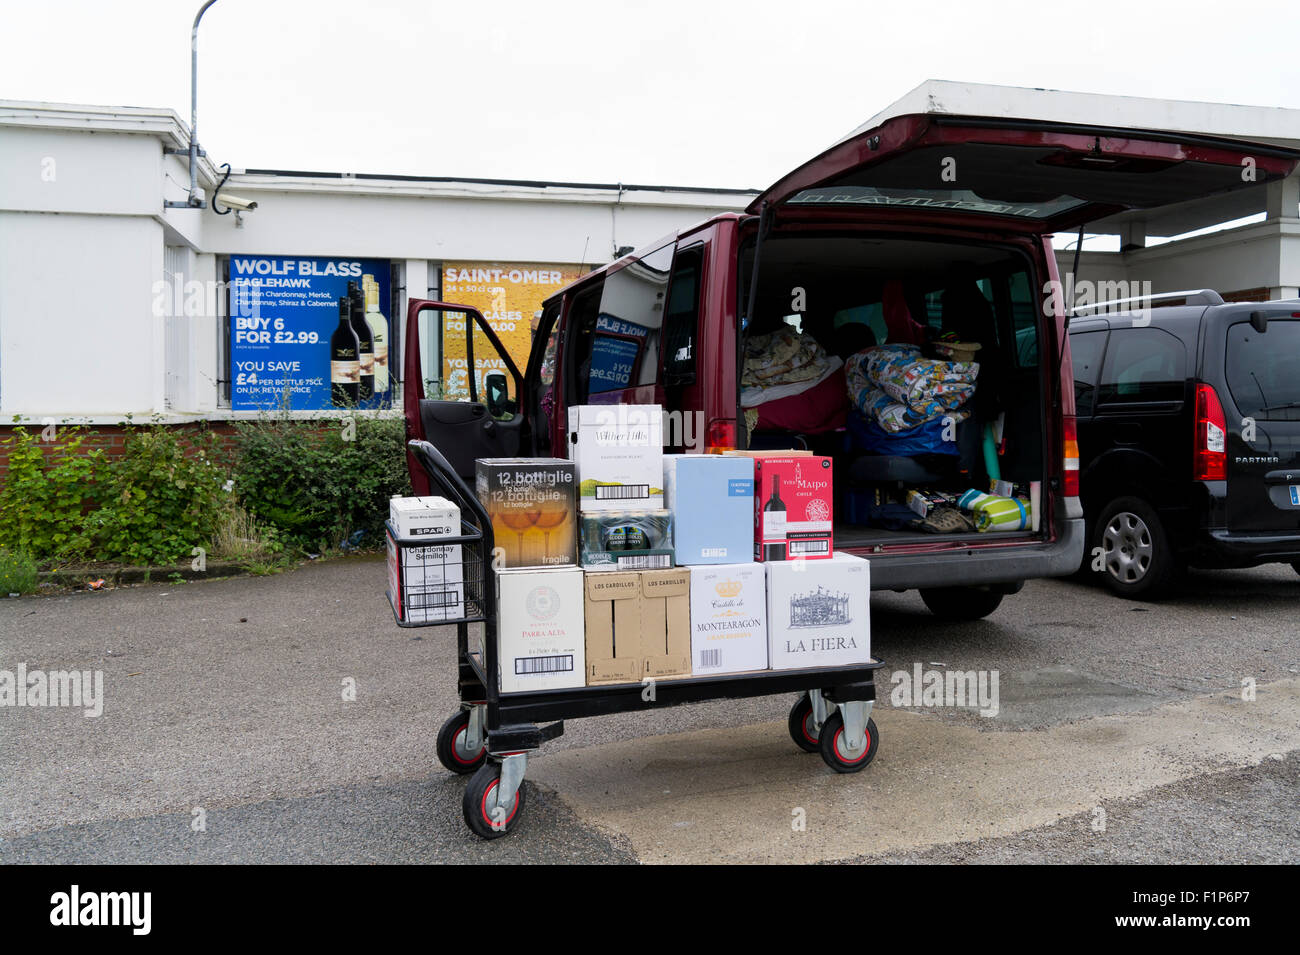 Booze cruise buying cheap alcohol at a Calais wine superstore France - Stock Image